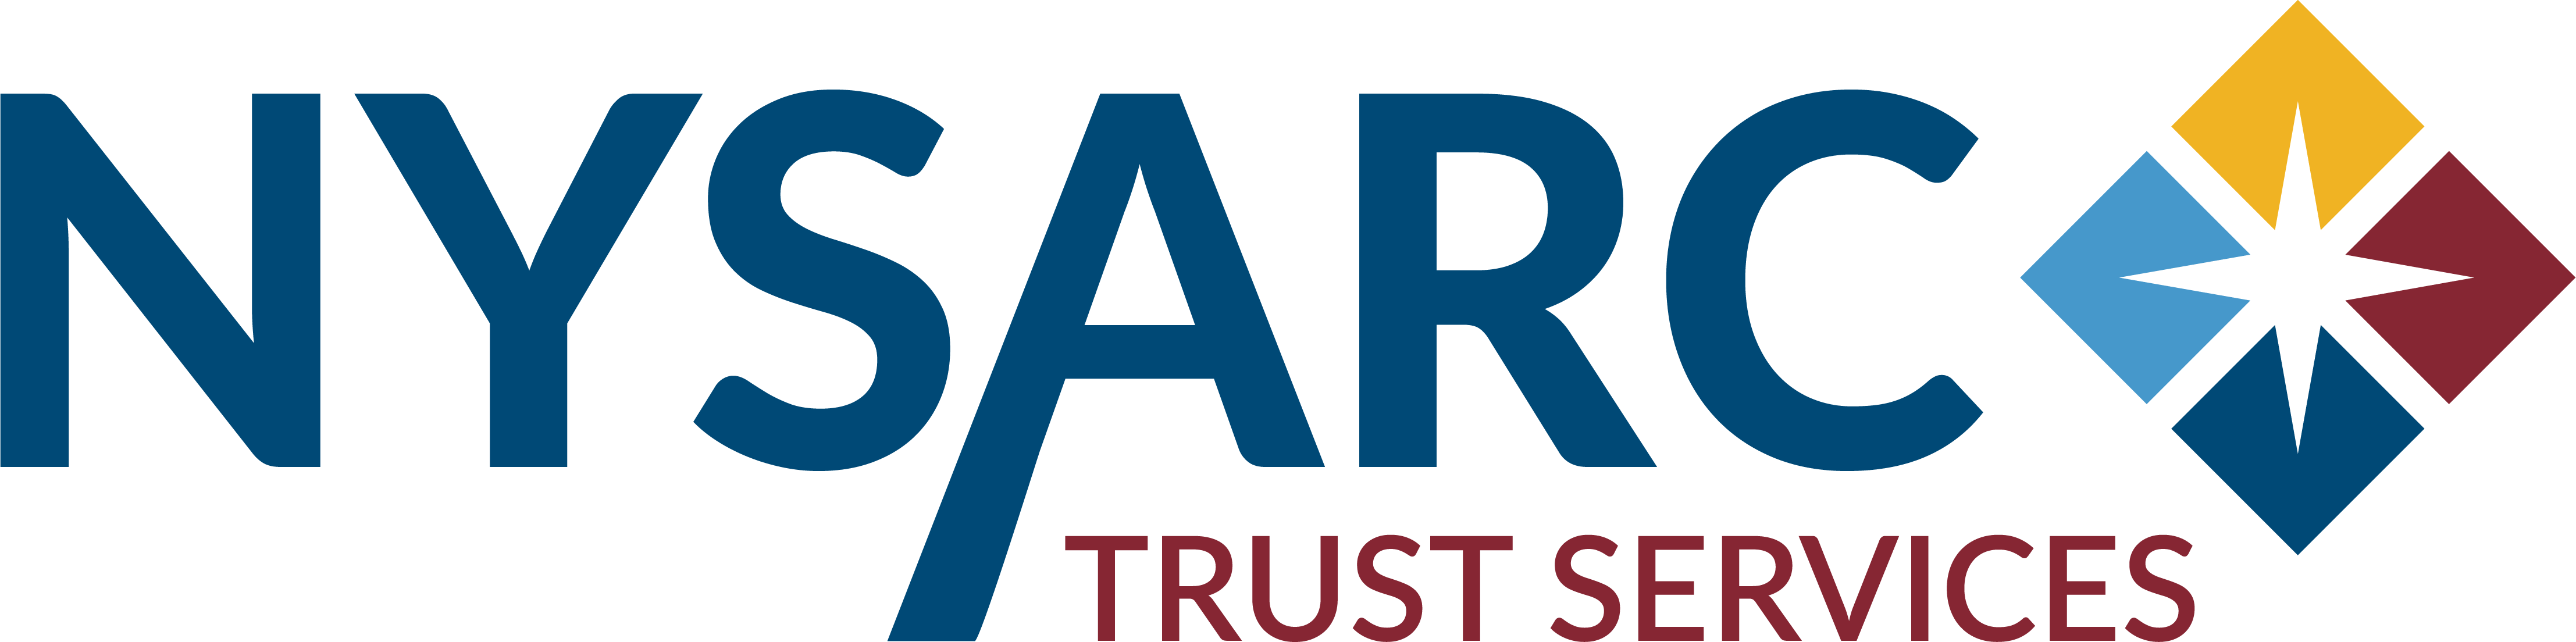 NYSARC Trust Services